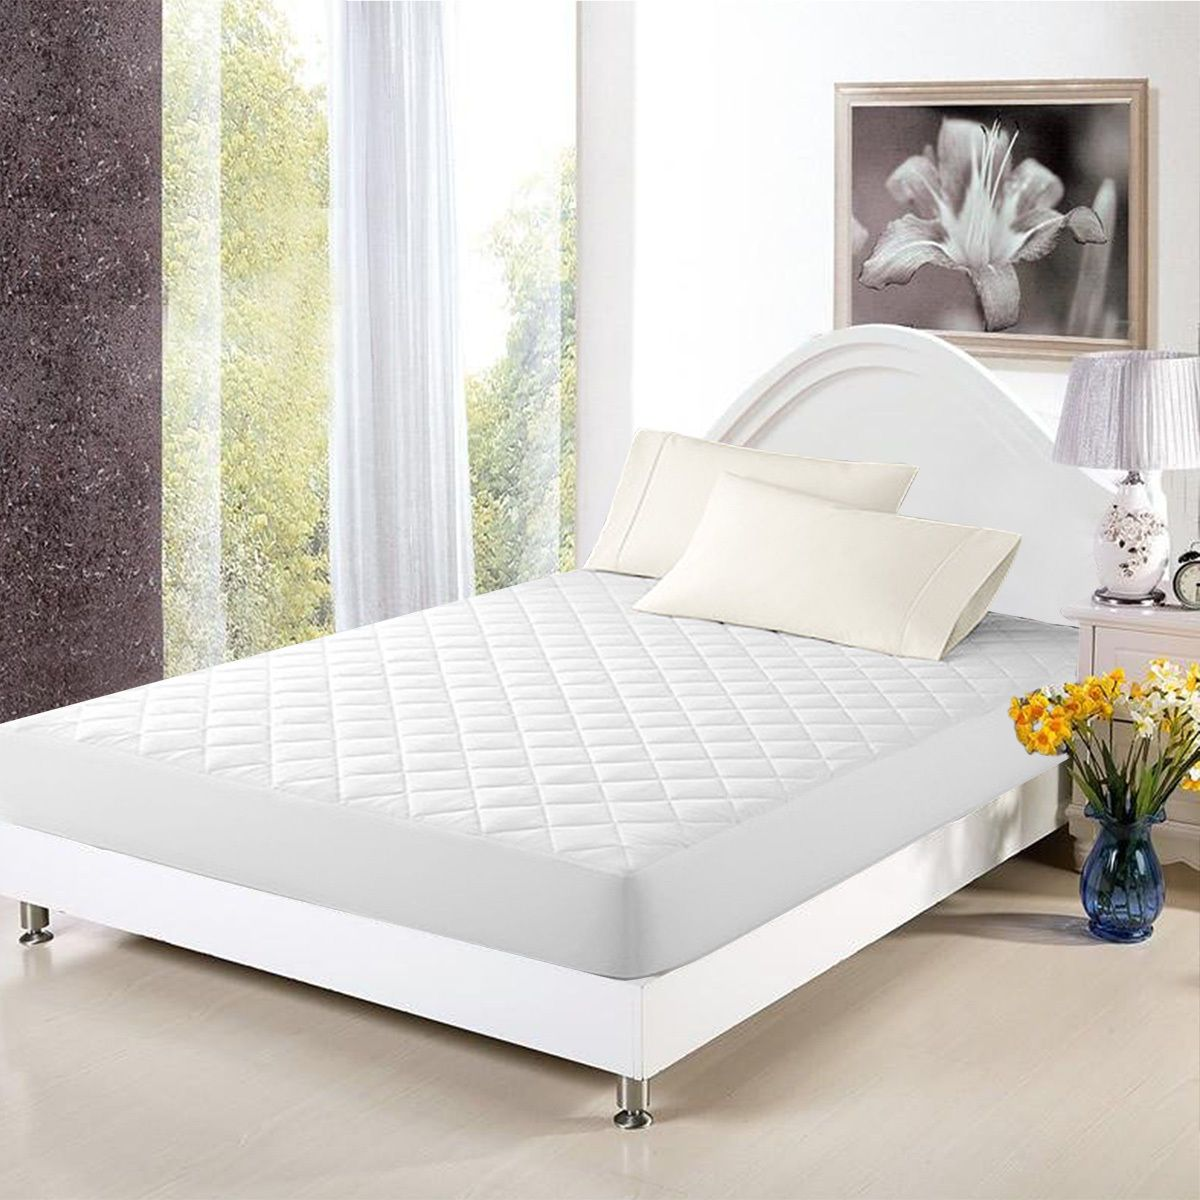 Mattresses why not hanging on the balcony garden compact seating - Mattress Cover Bed Topper Bug Dust Mite Waterproof Pad Protector Quilted 5 Size